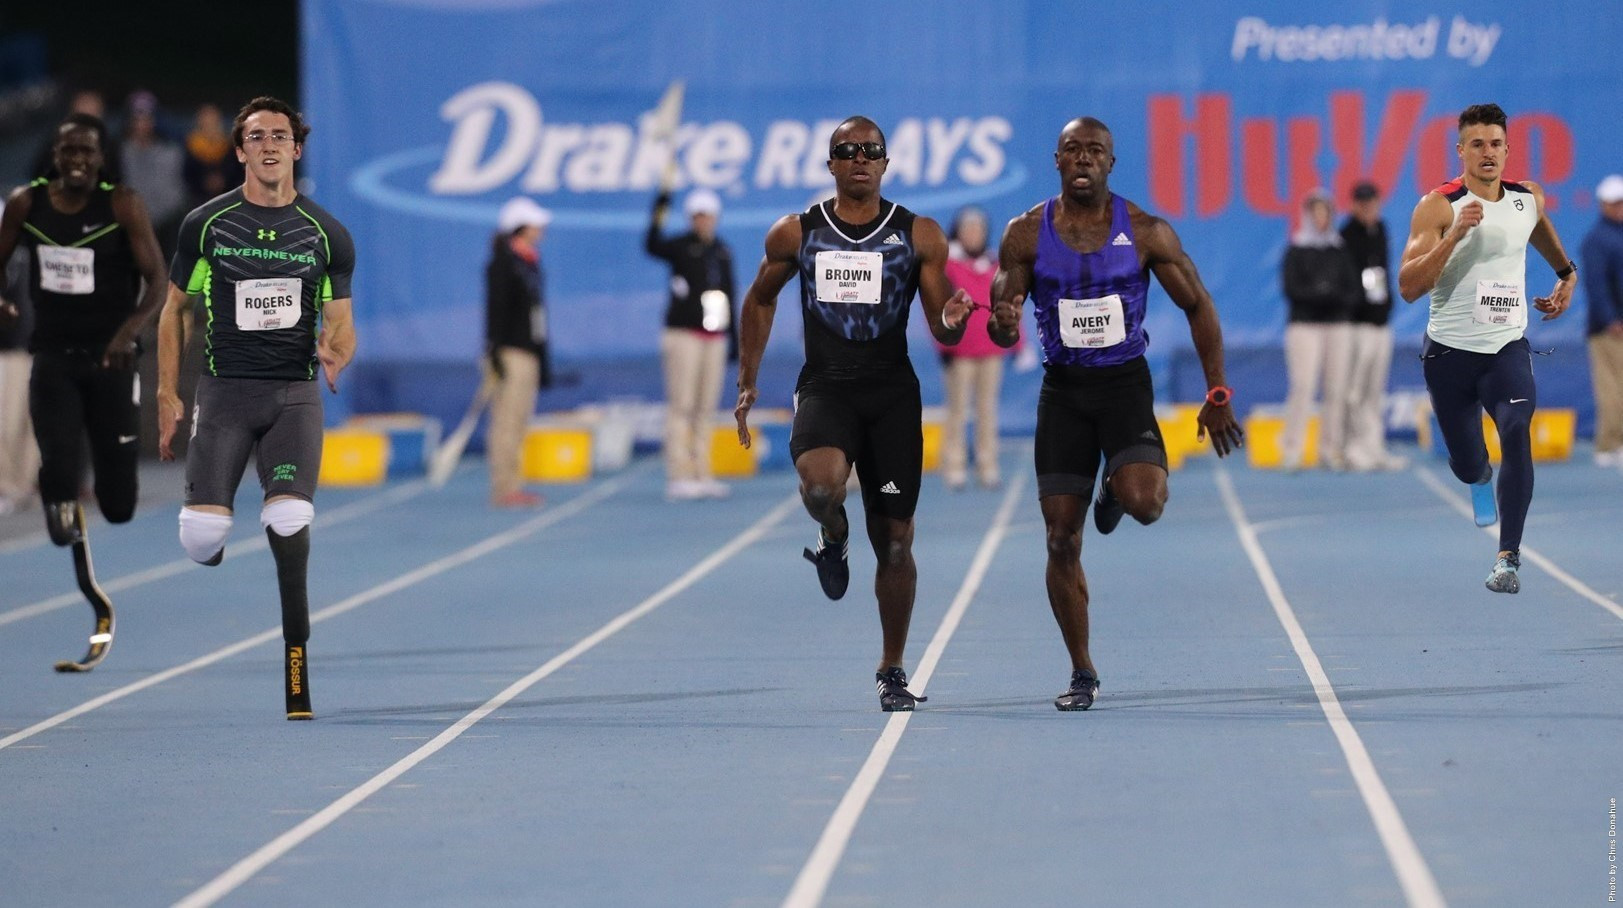 Paralympic gold medallist David Brown and guide Jerome Avery will be among the top US athletes taking part in the Drake Relays later this month ©Drake Relays